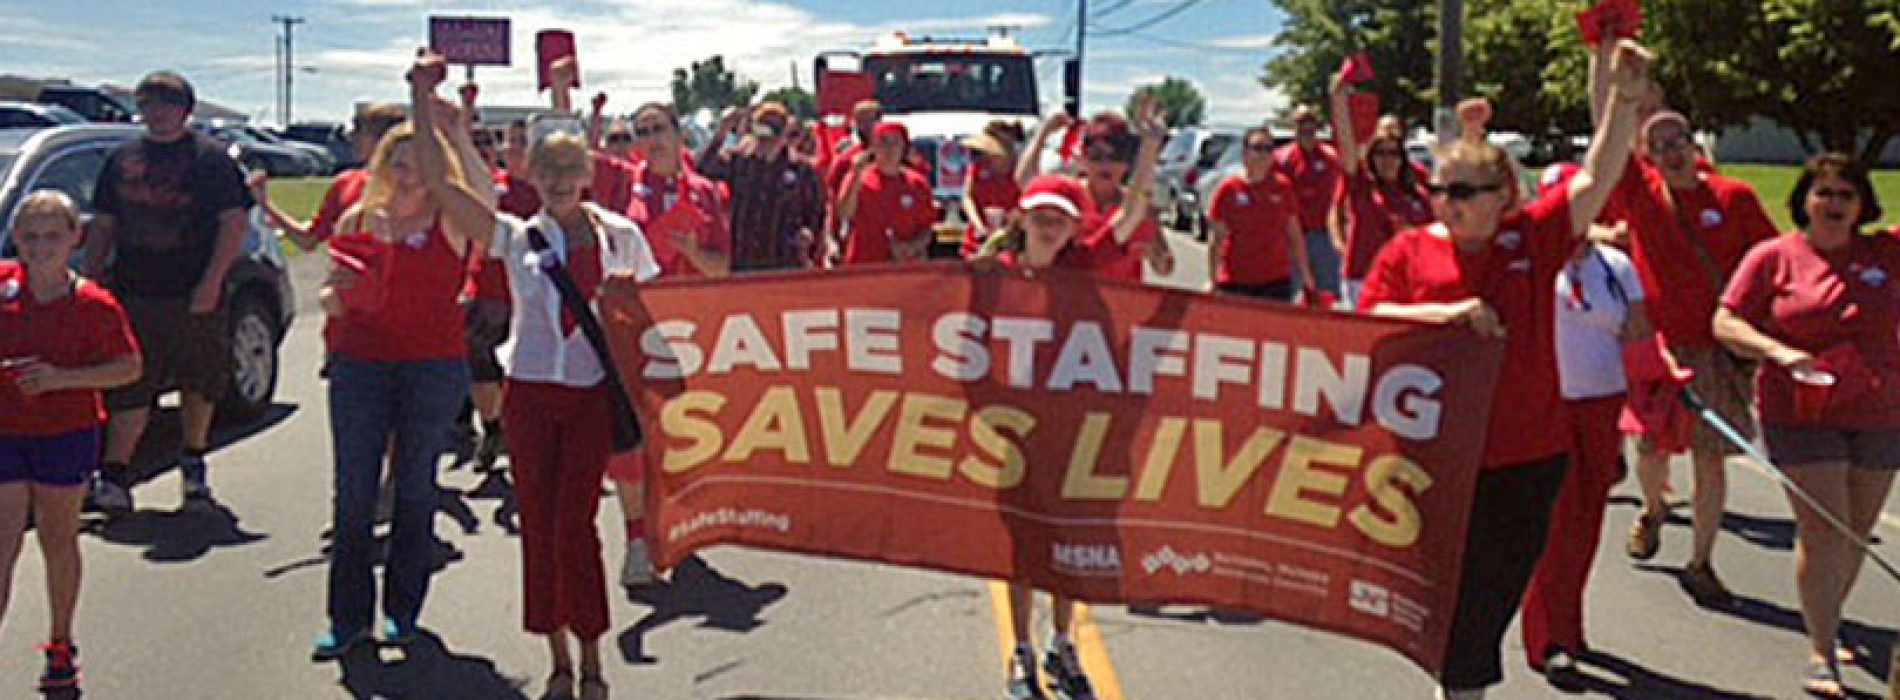 Nurses strike in Presque Isle over wages, safe staffing levels